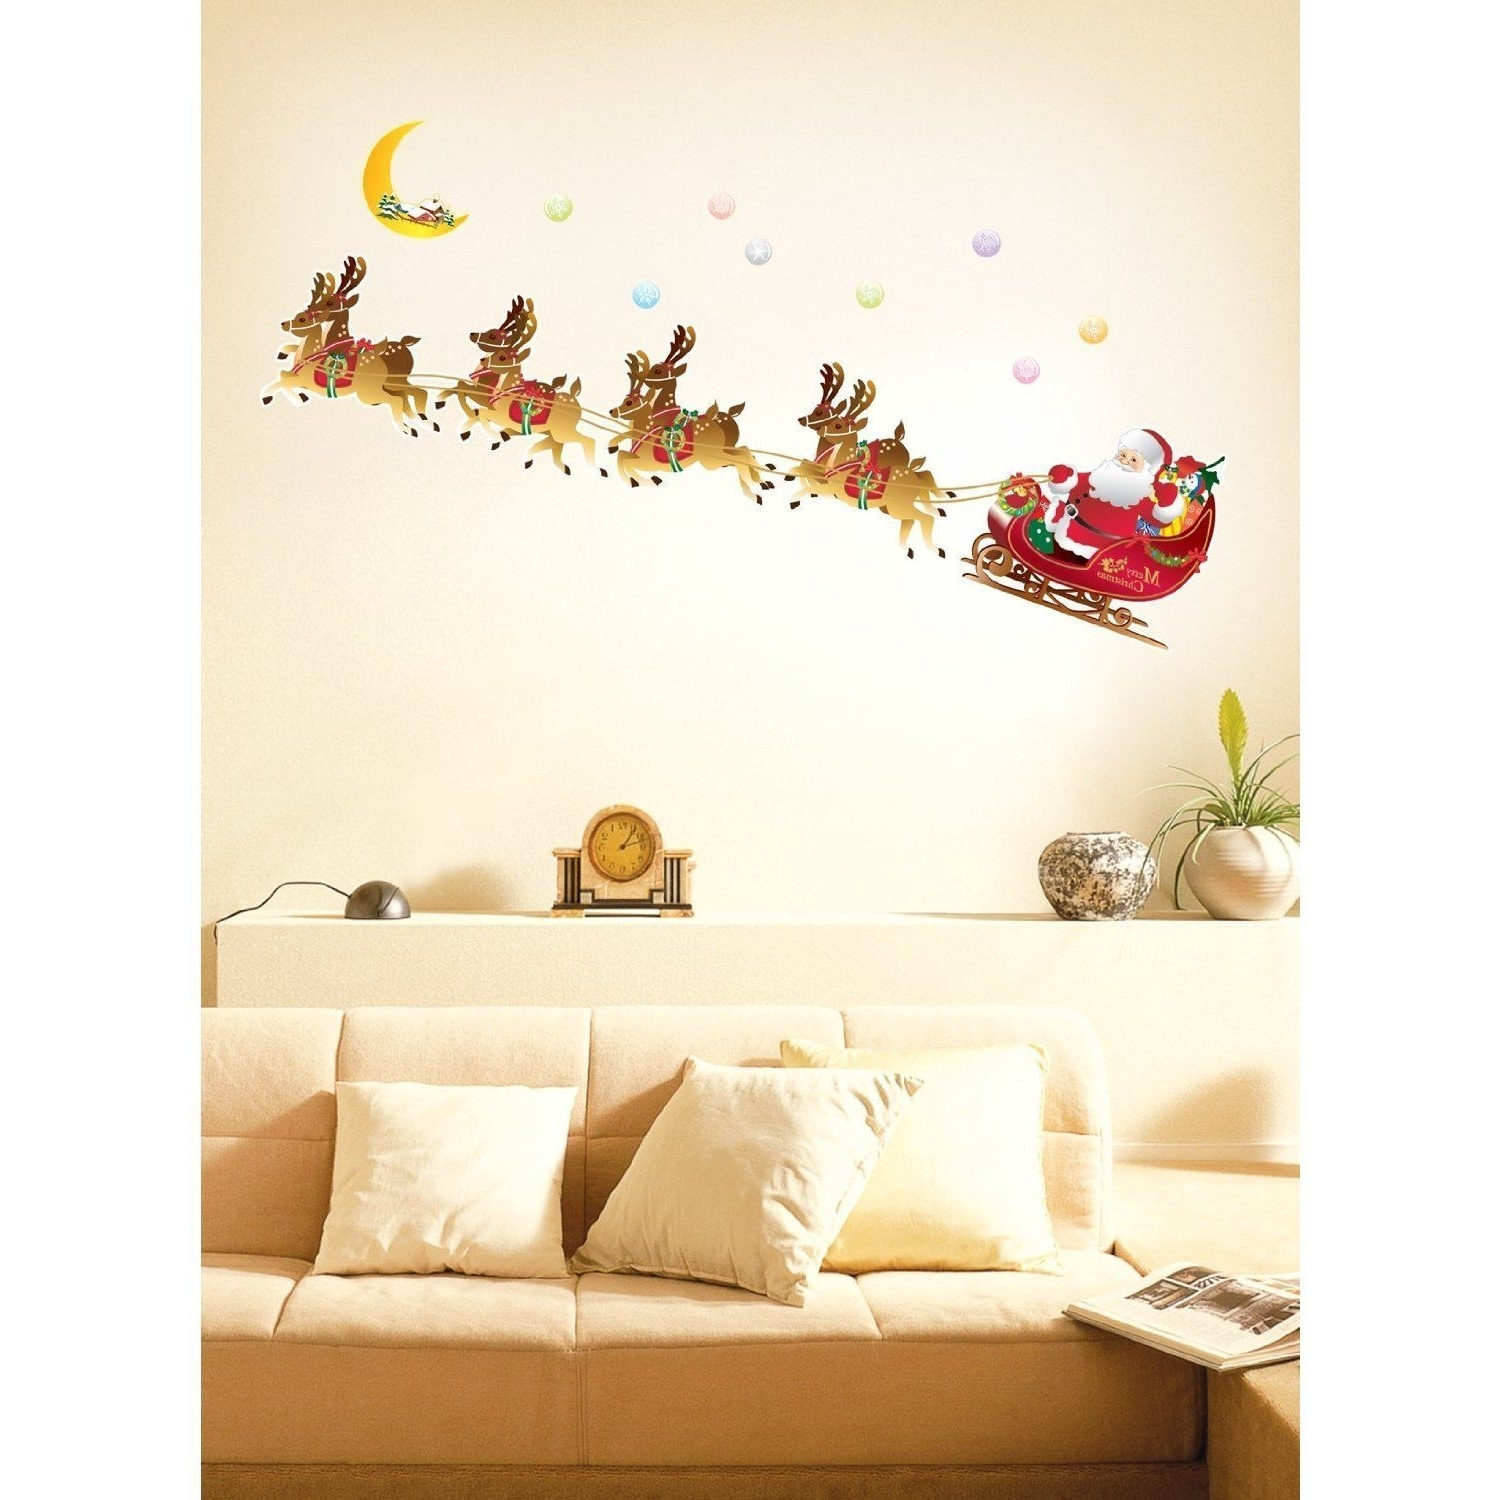 Wall Accents Stickers Within Popular Christmas Special – Décor Ideas For Your Home (View 4 of 15)